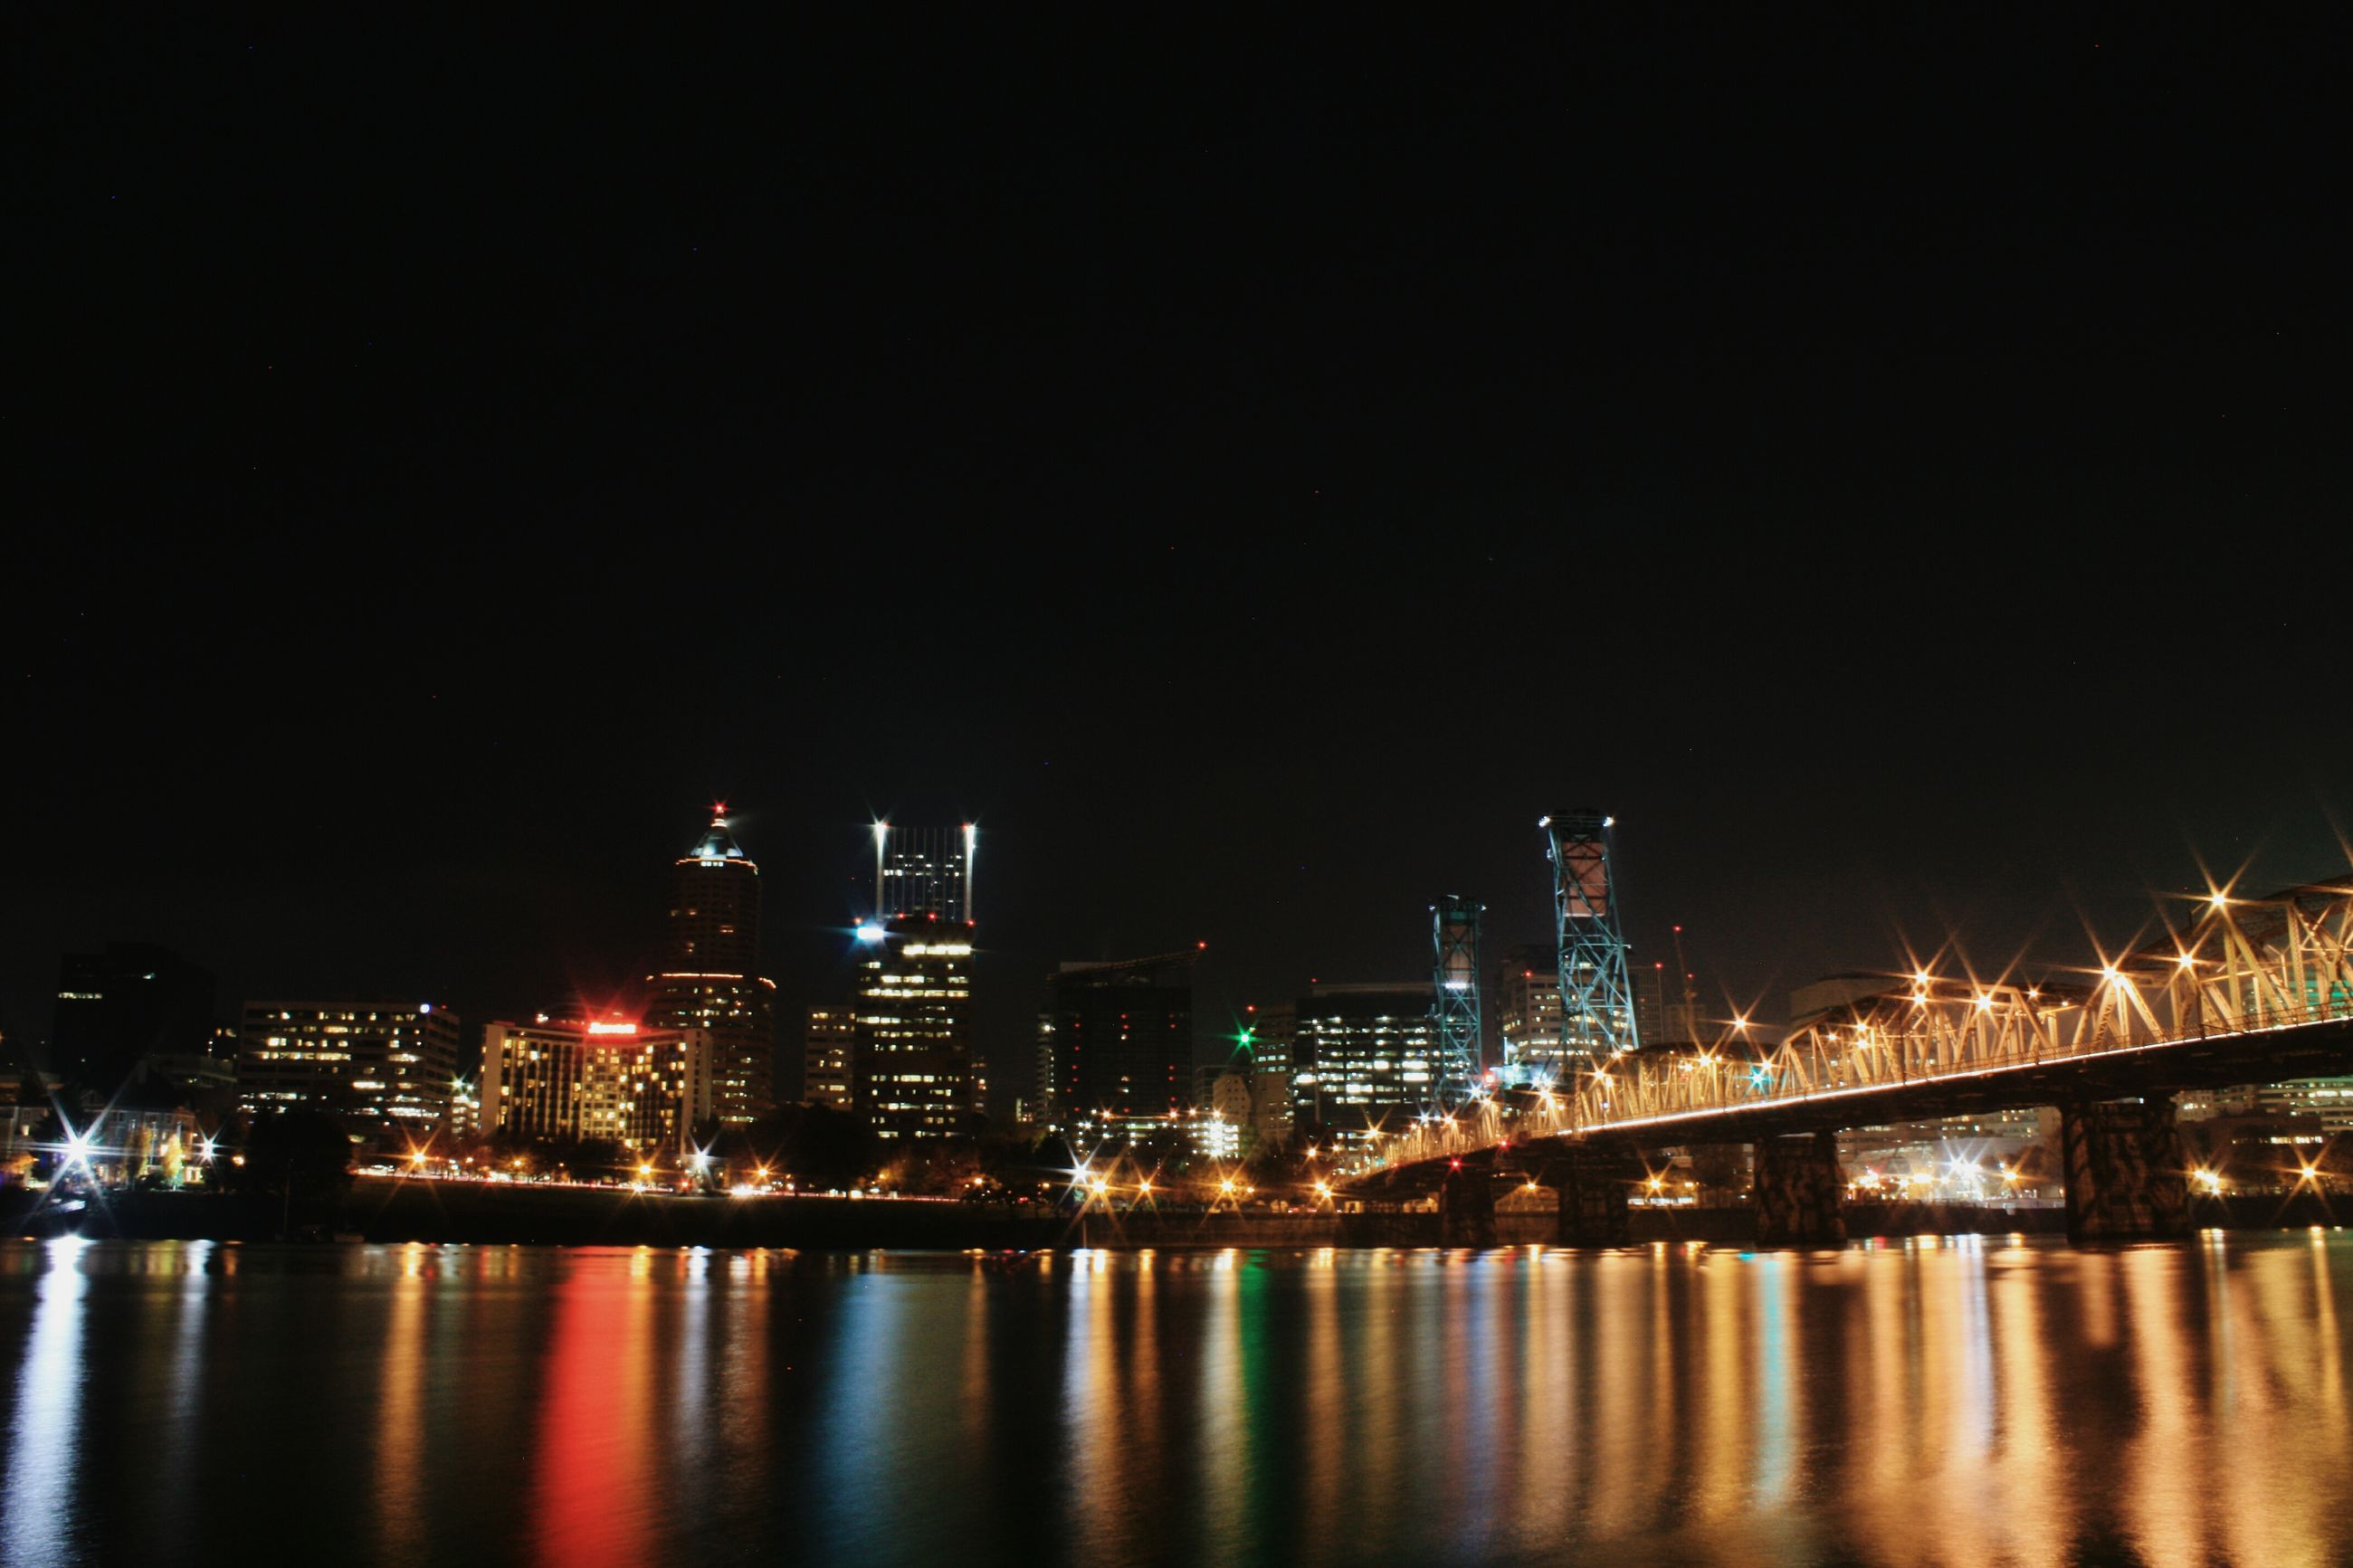 illuminated, night, city, building exterior, architecture, water, waterfront, built structure, cityscape, skyscraper, river, reflection, urban skyline, modern, office building, clear sky, tall - high, copy space, sea, tower